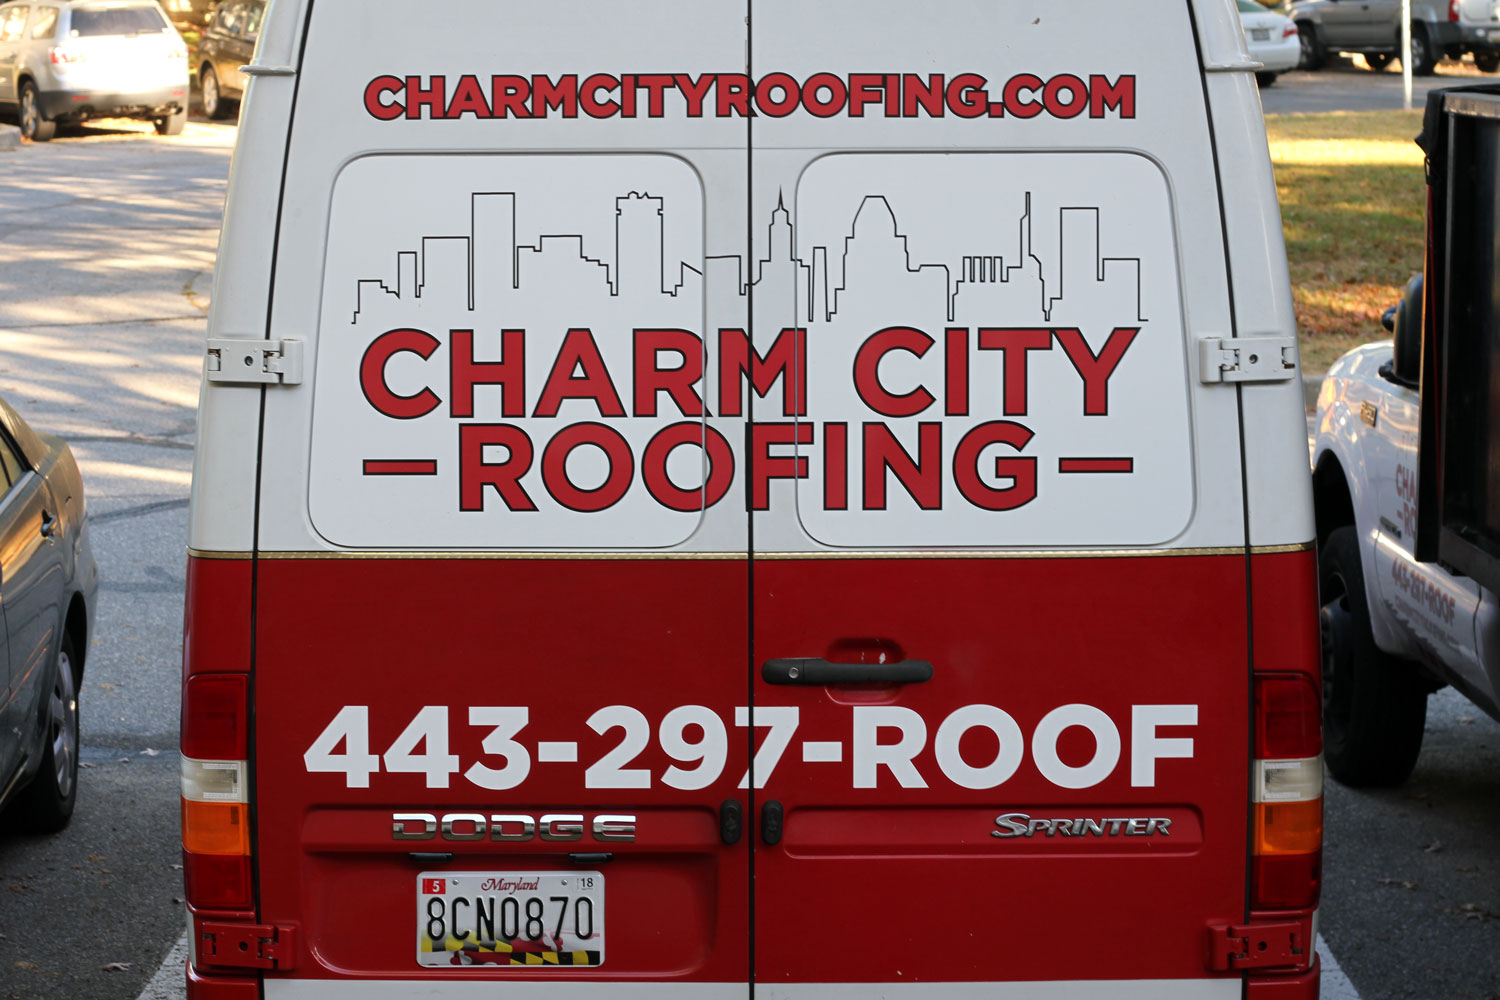 The Charm City Roofing van from the back end while in a court parking space